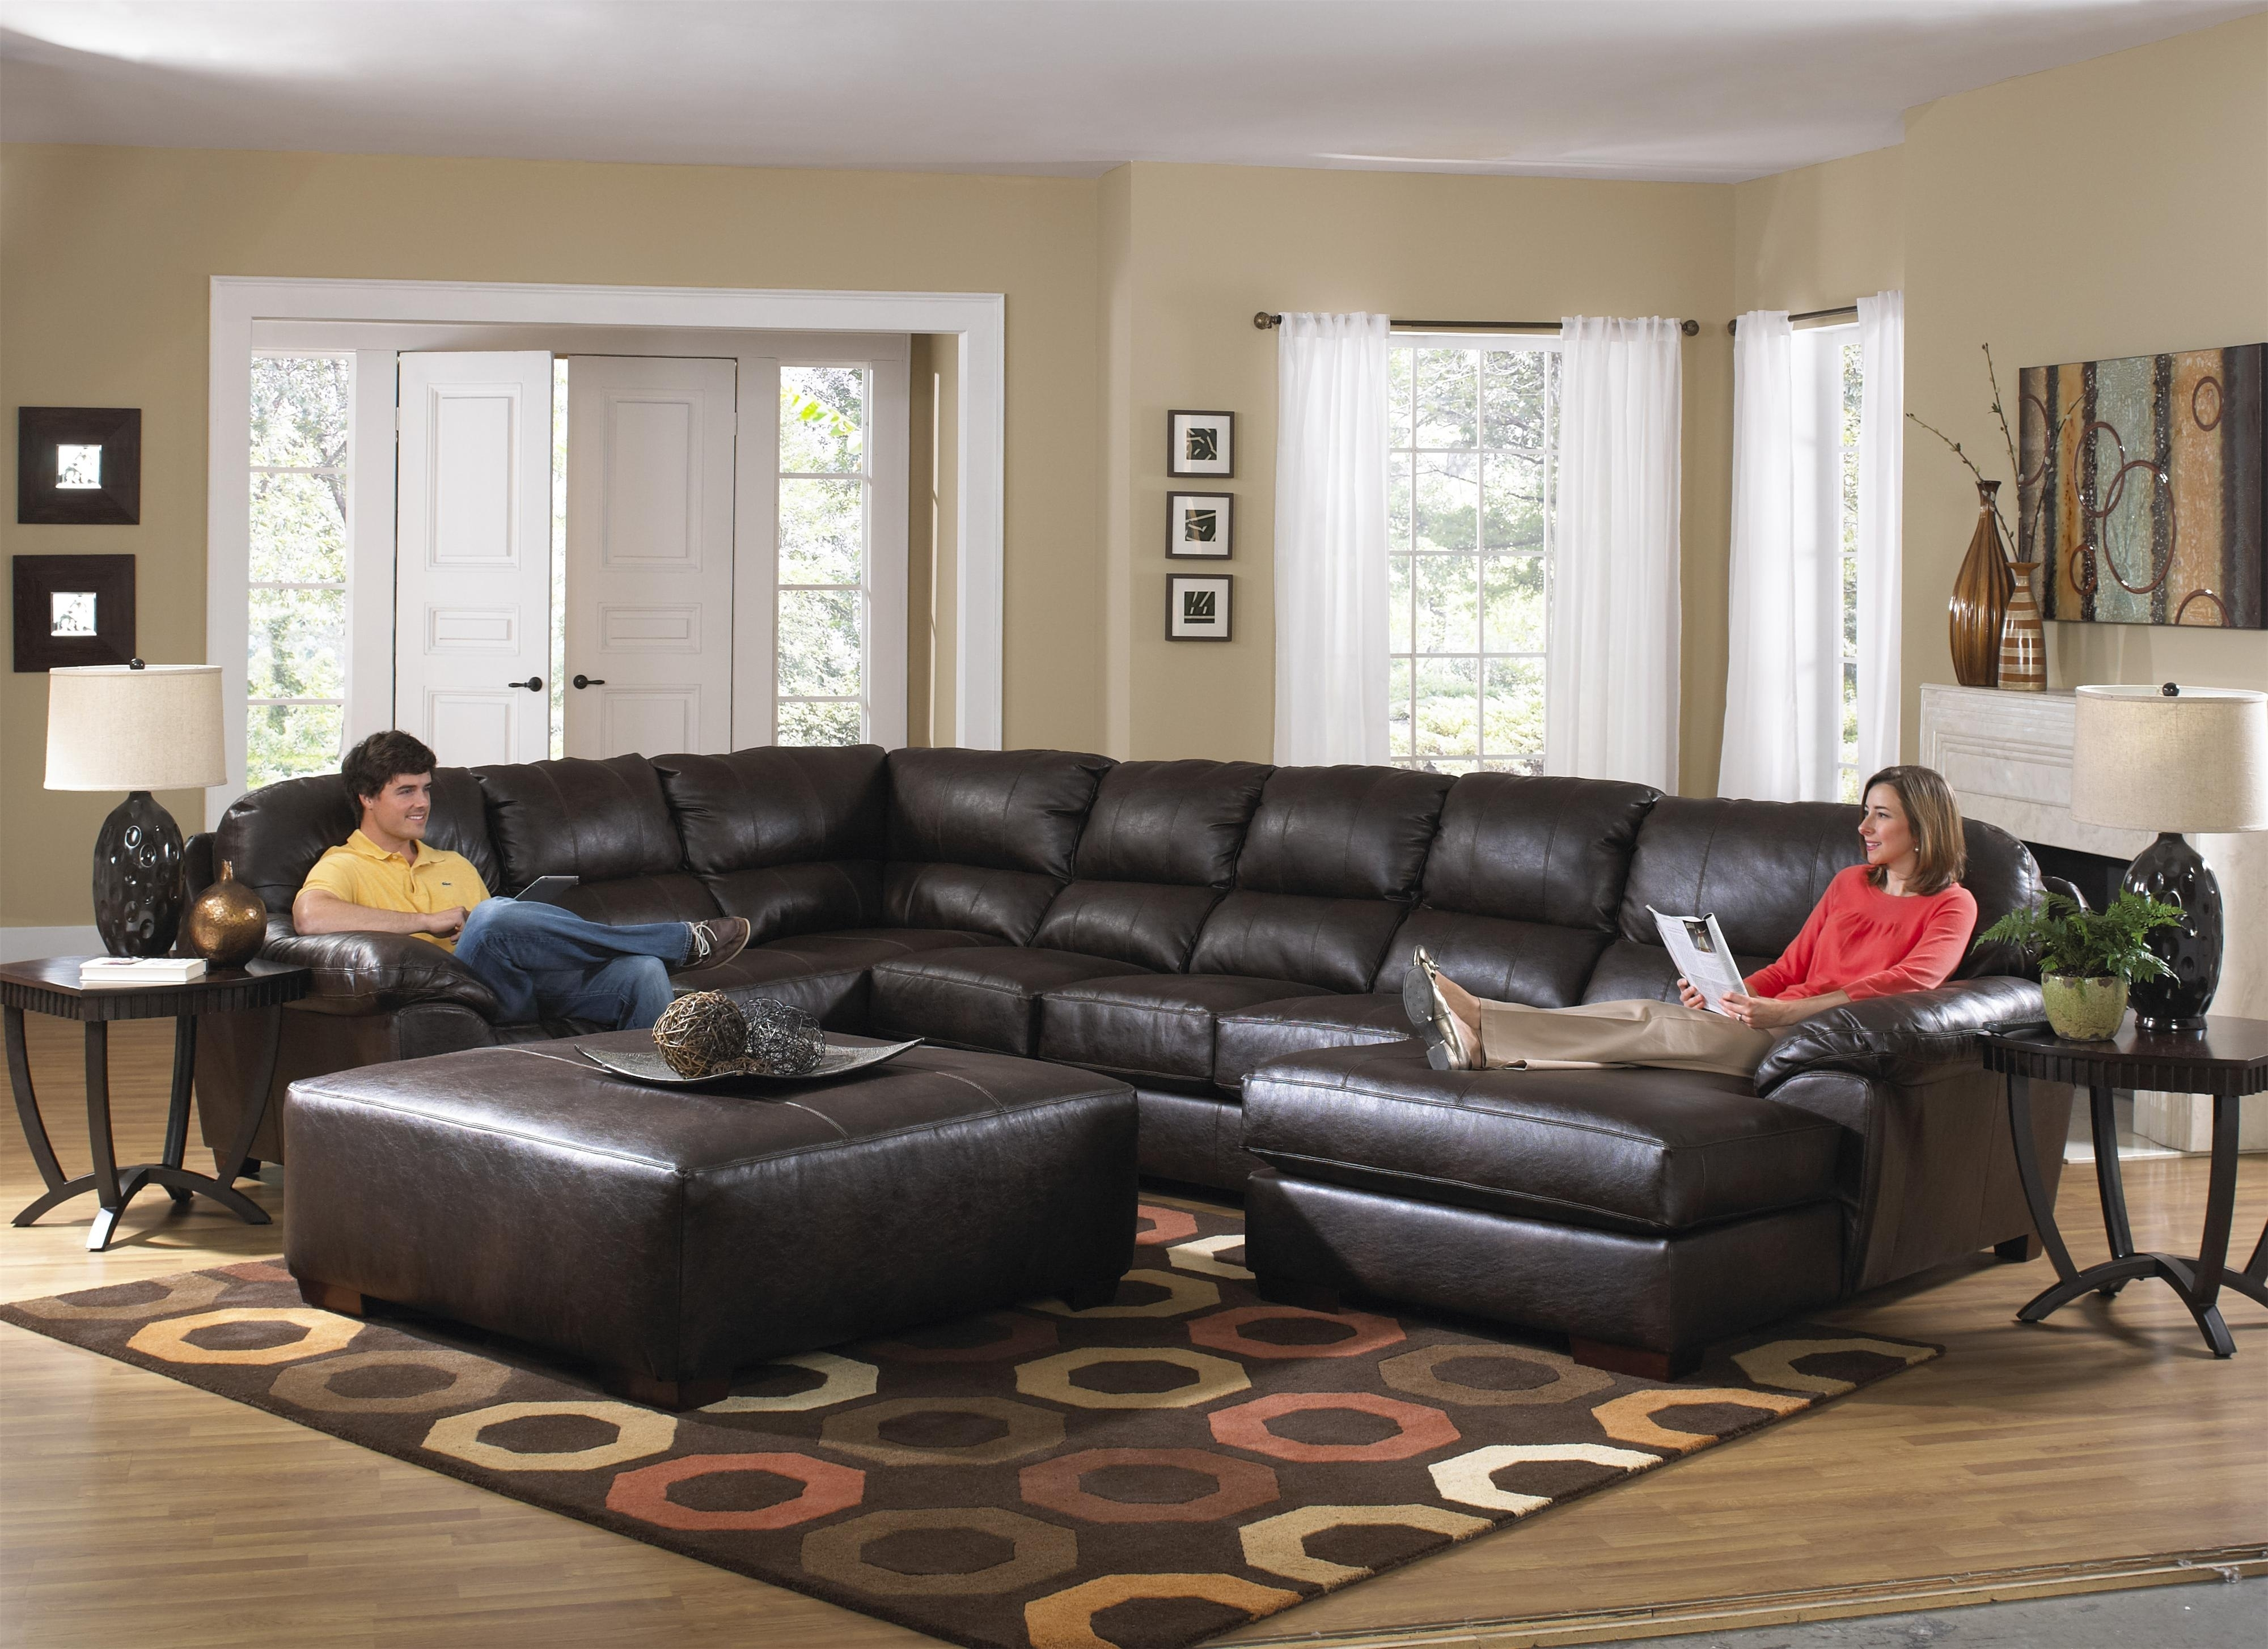 Sectional Sofa Large Ottoman • Sectional Sofa Throughout Couches With Large Ottoman (View 8 of 10)